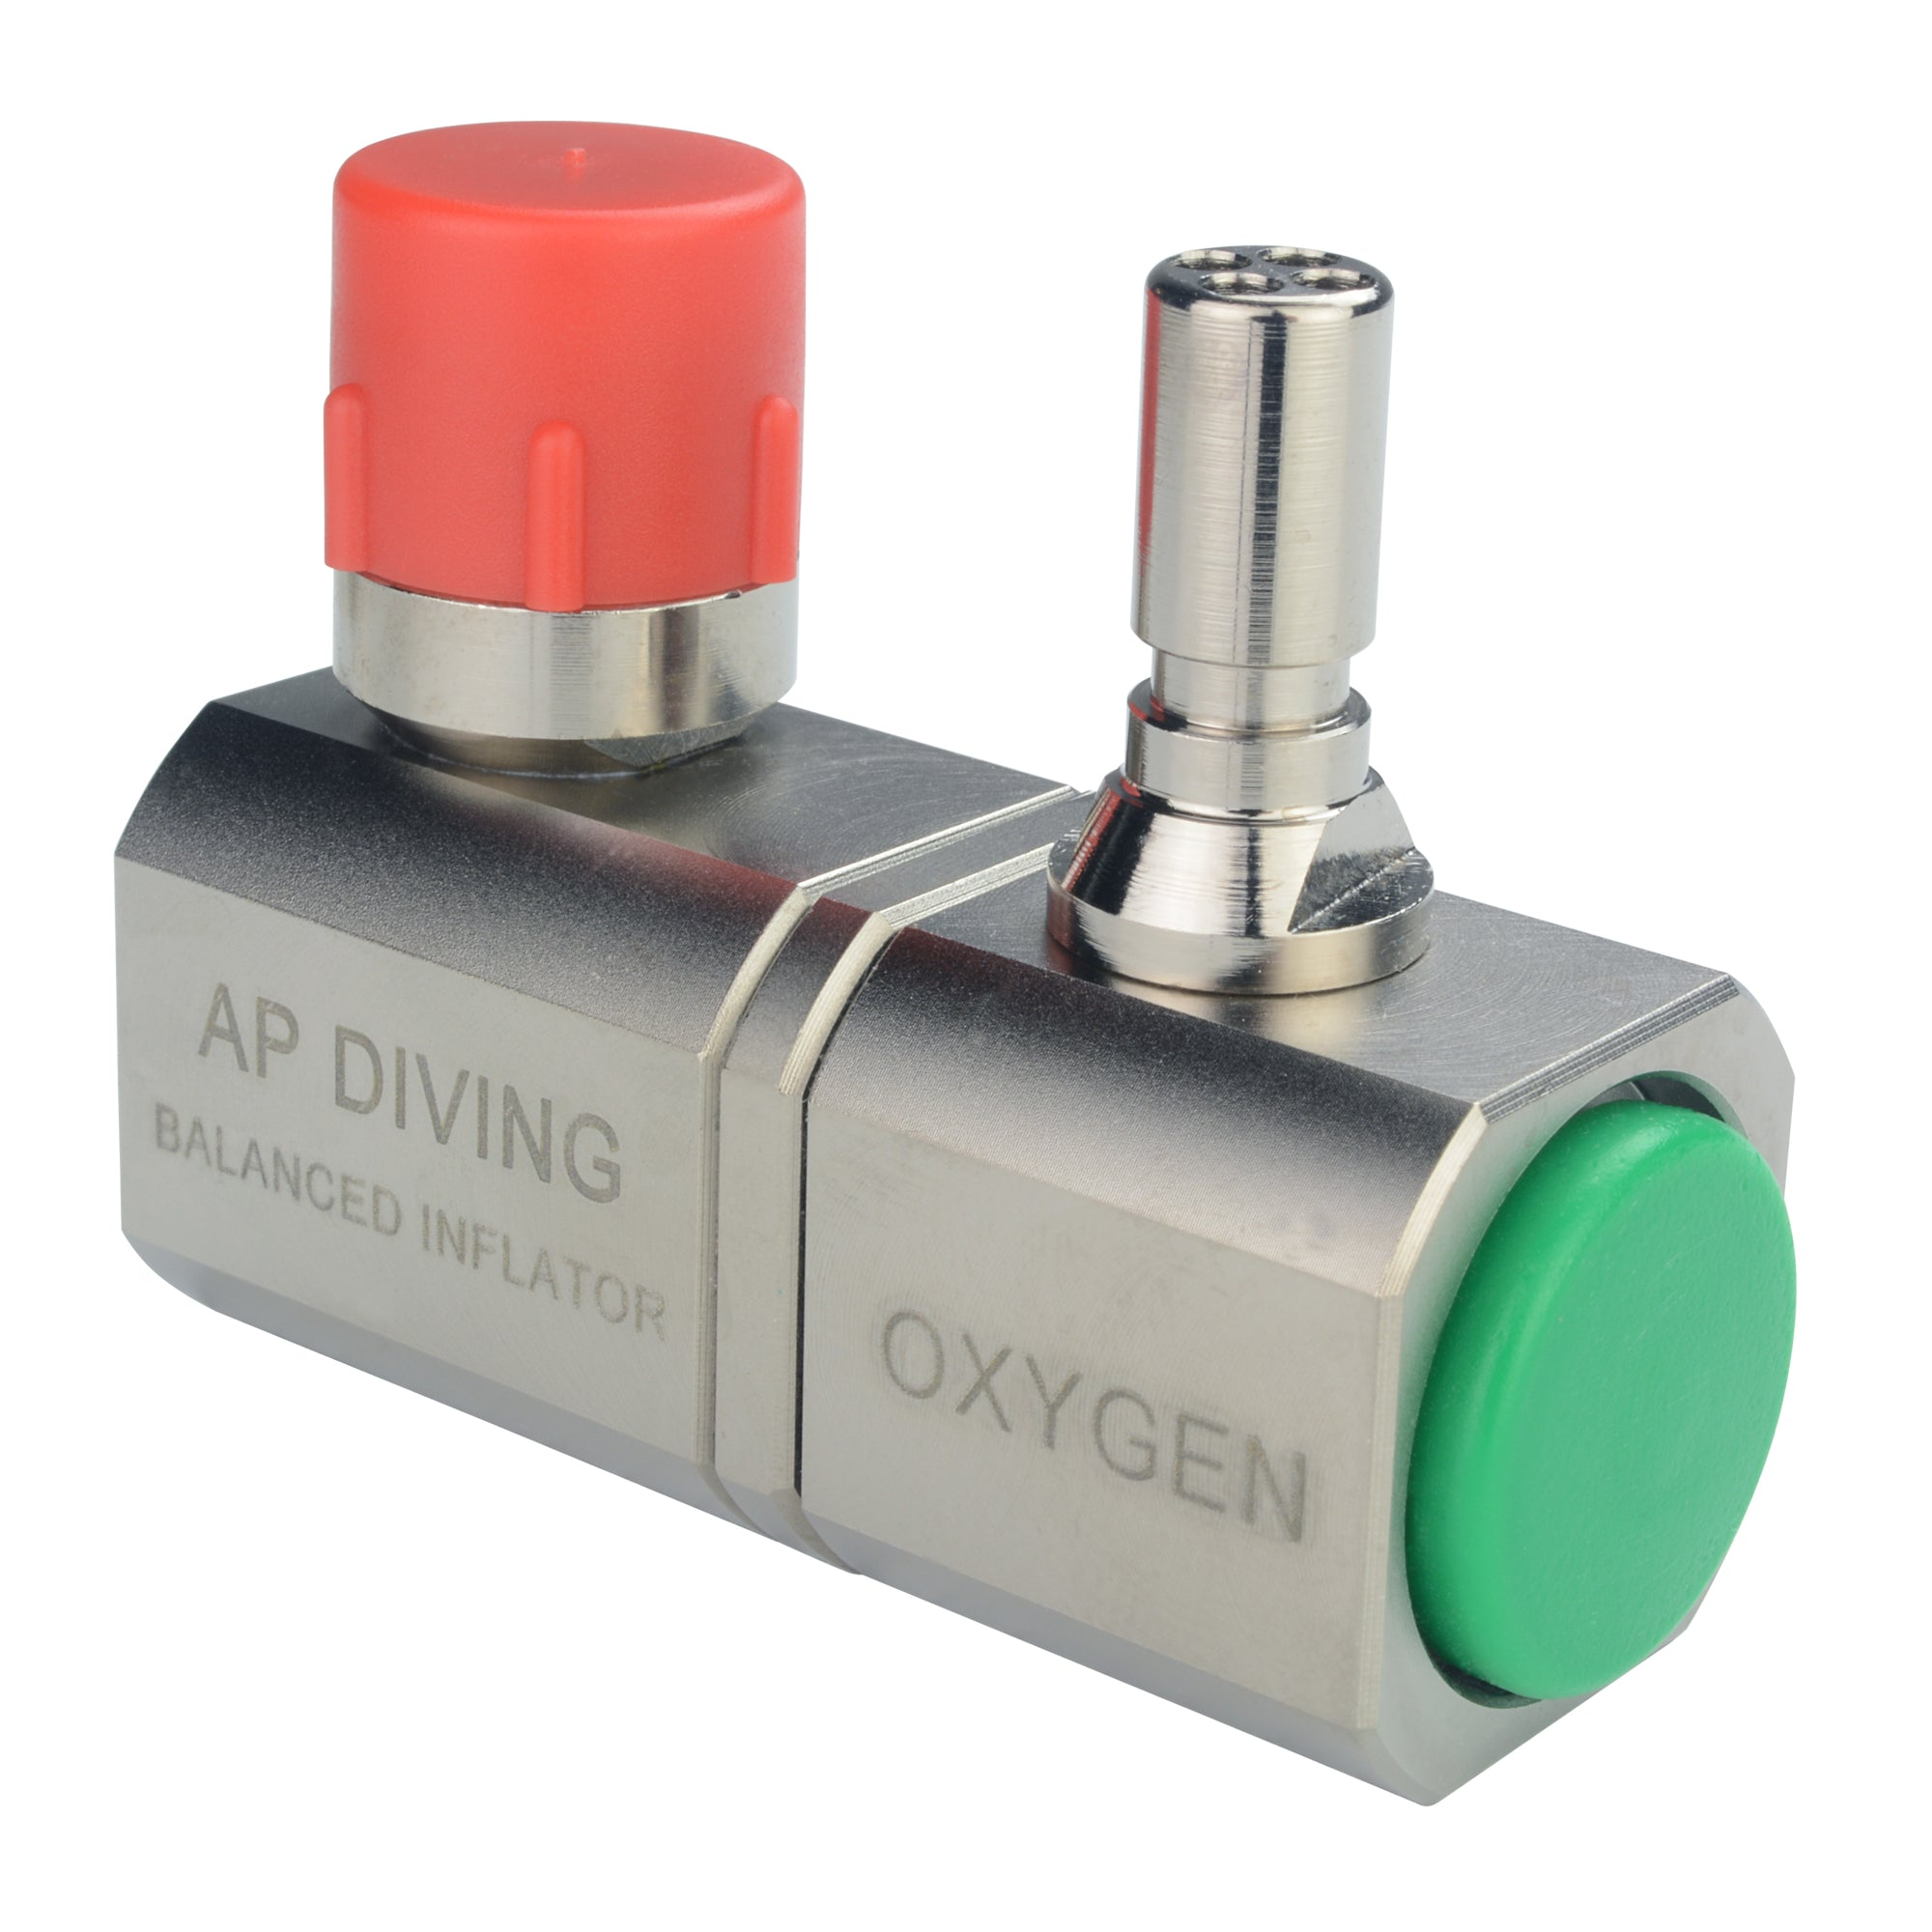 RBV07A/35S - Oxygen Swivel Inflator - Single| AP Diving | Silent Diving | Scuba Rebreather